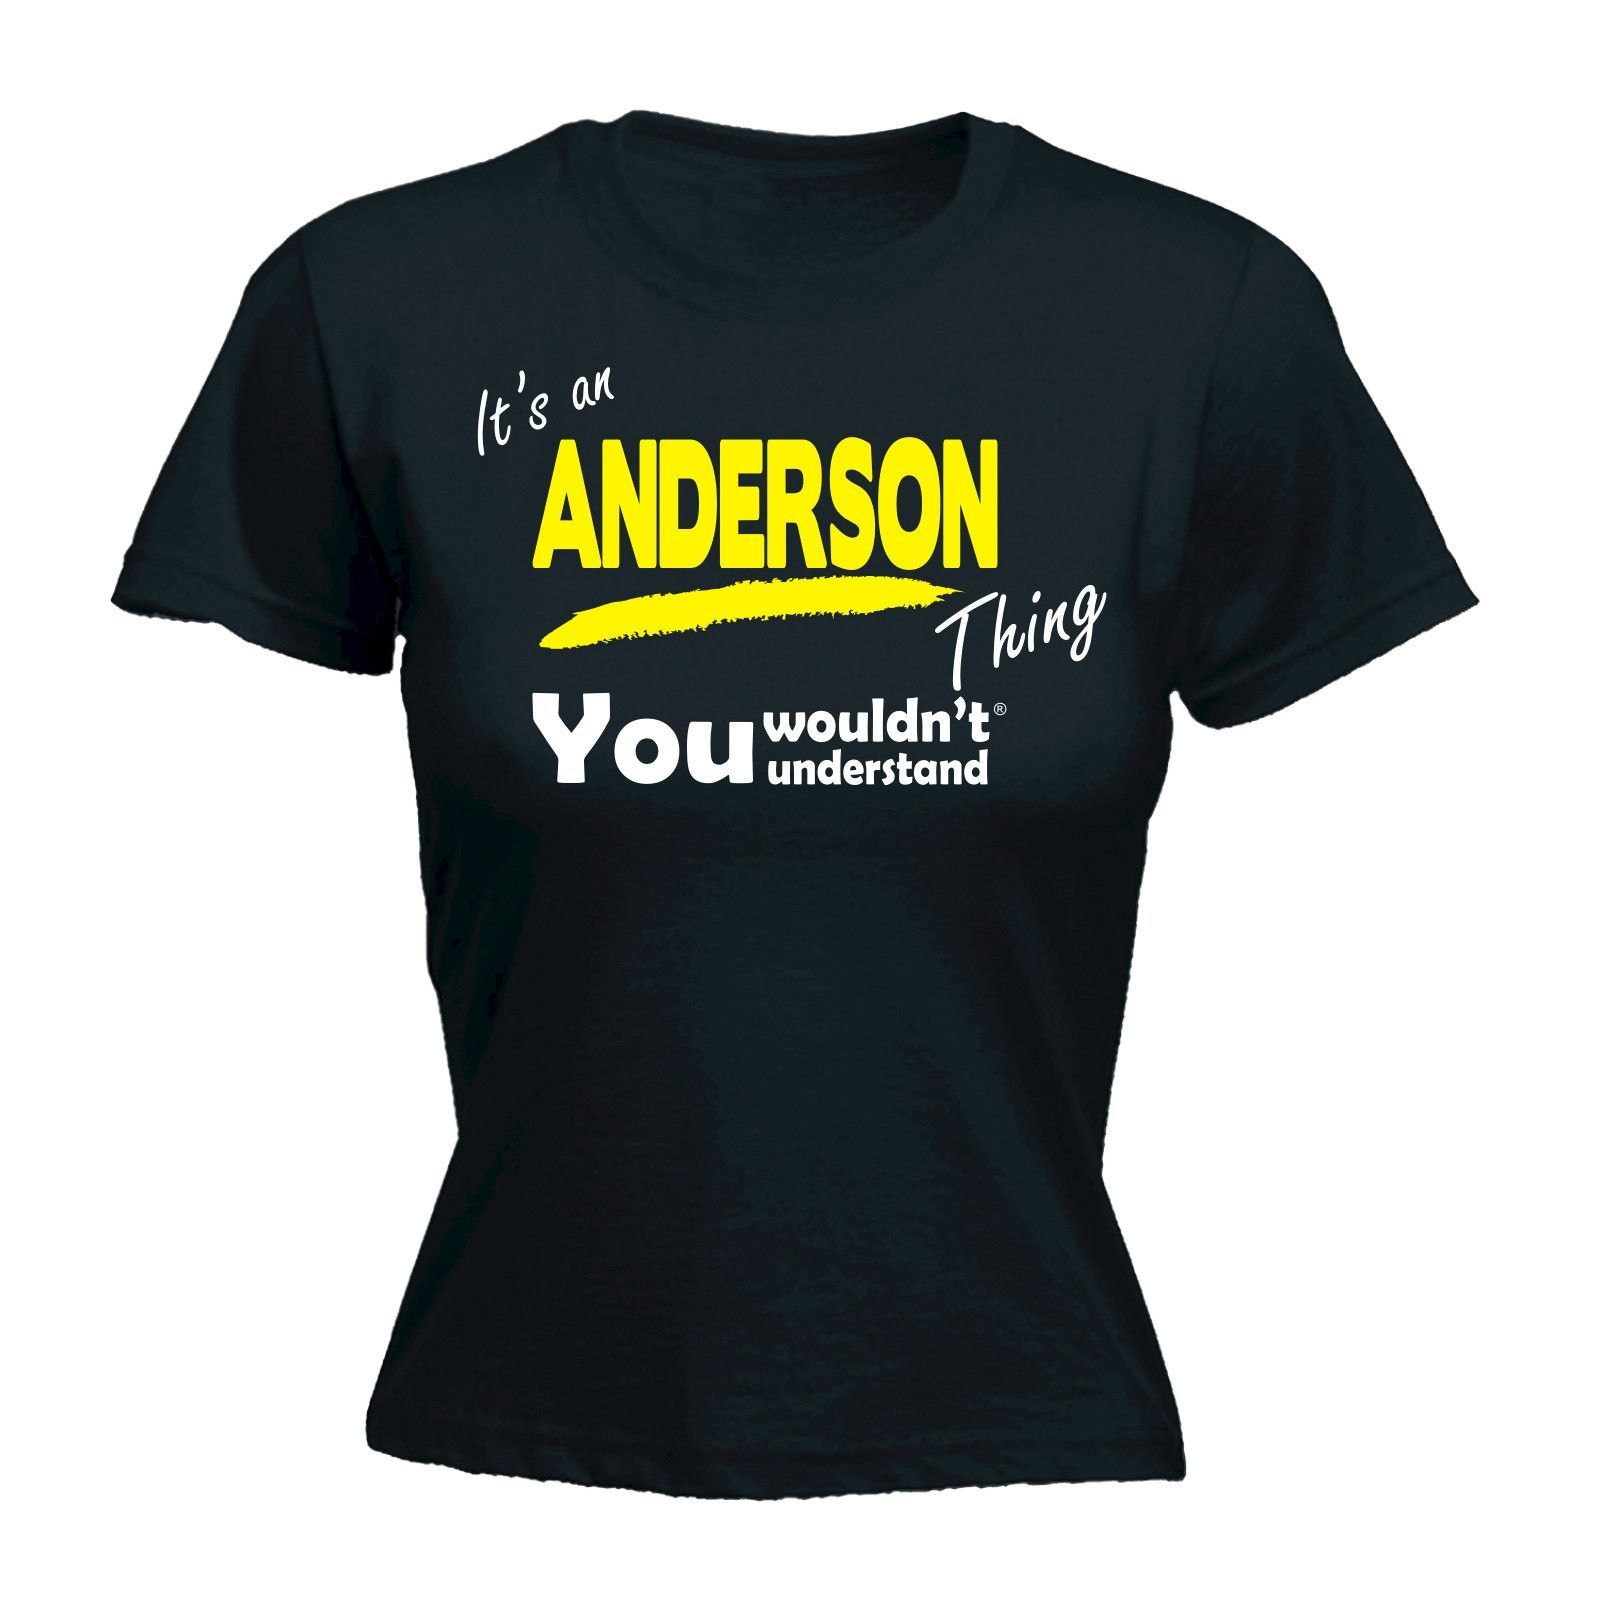 123t USA Women's It's An Anderson Thing You Wouldn't Understand Funny T-Shirt